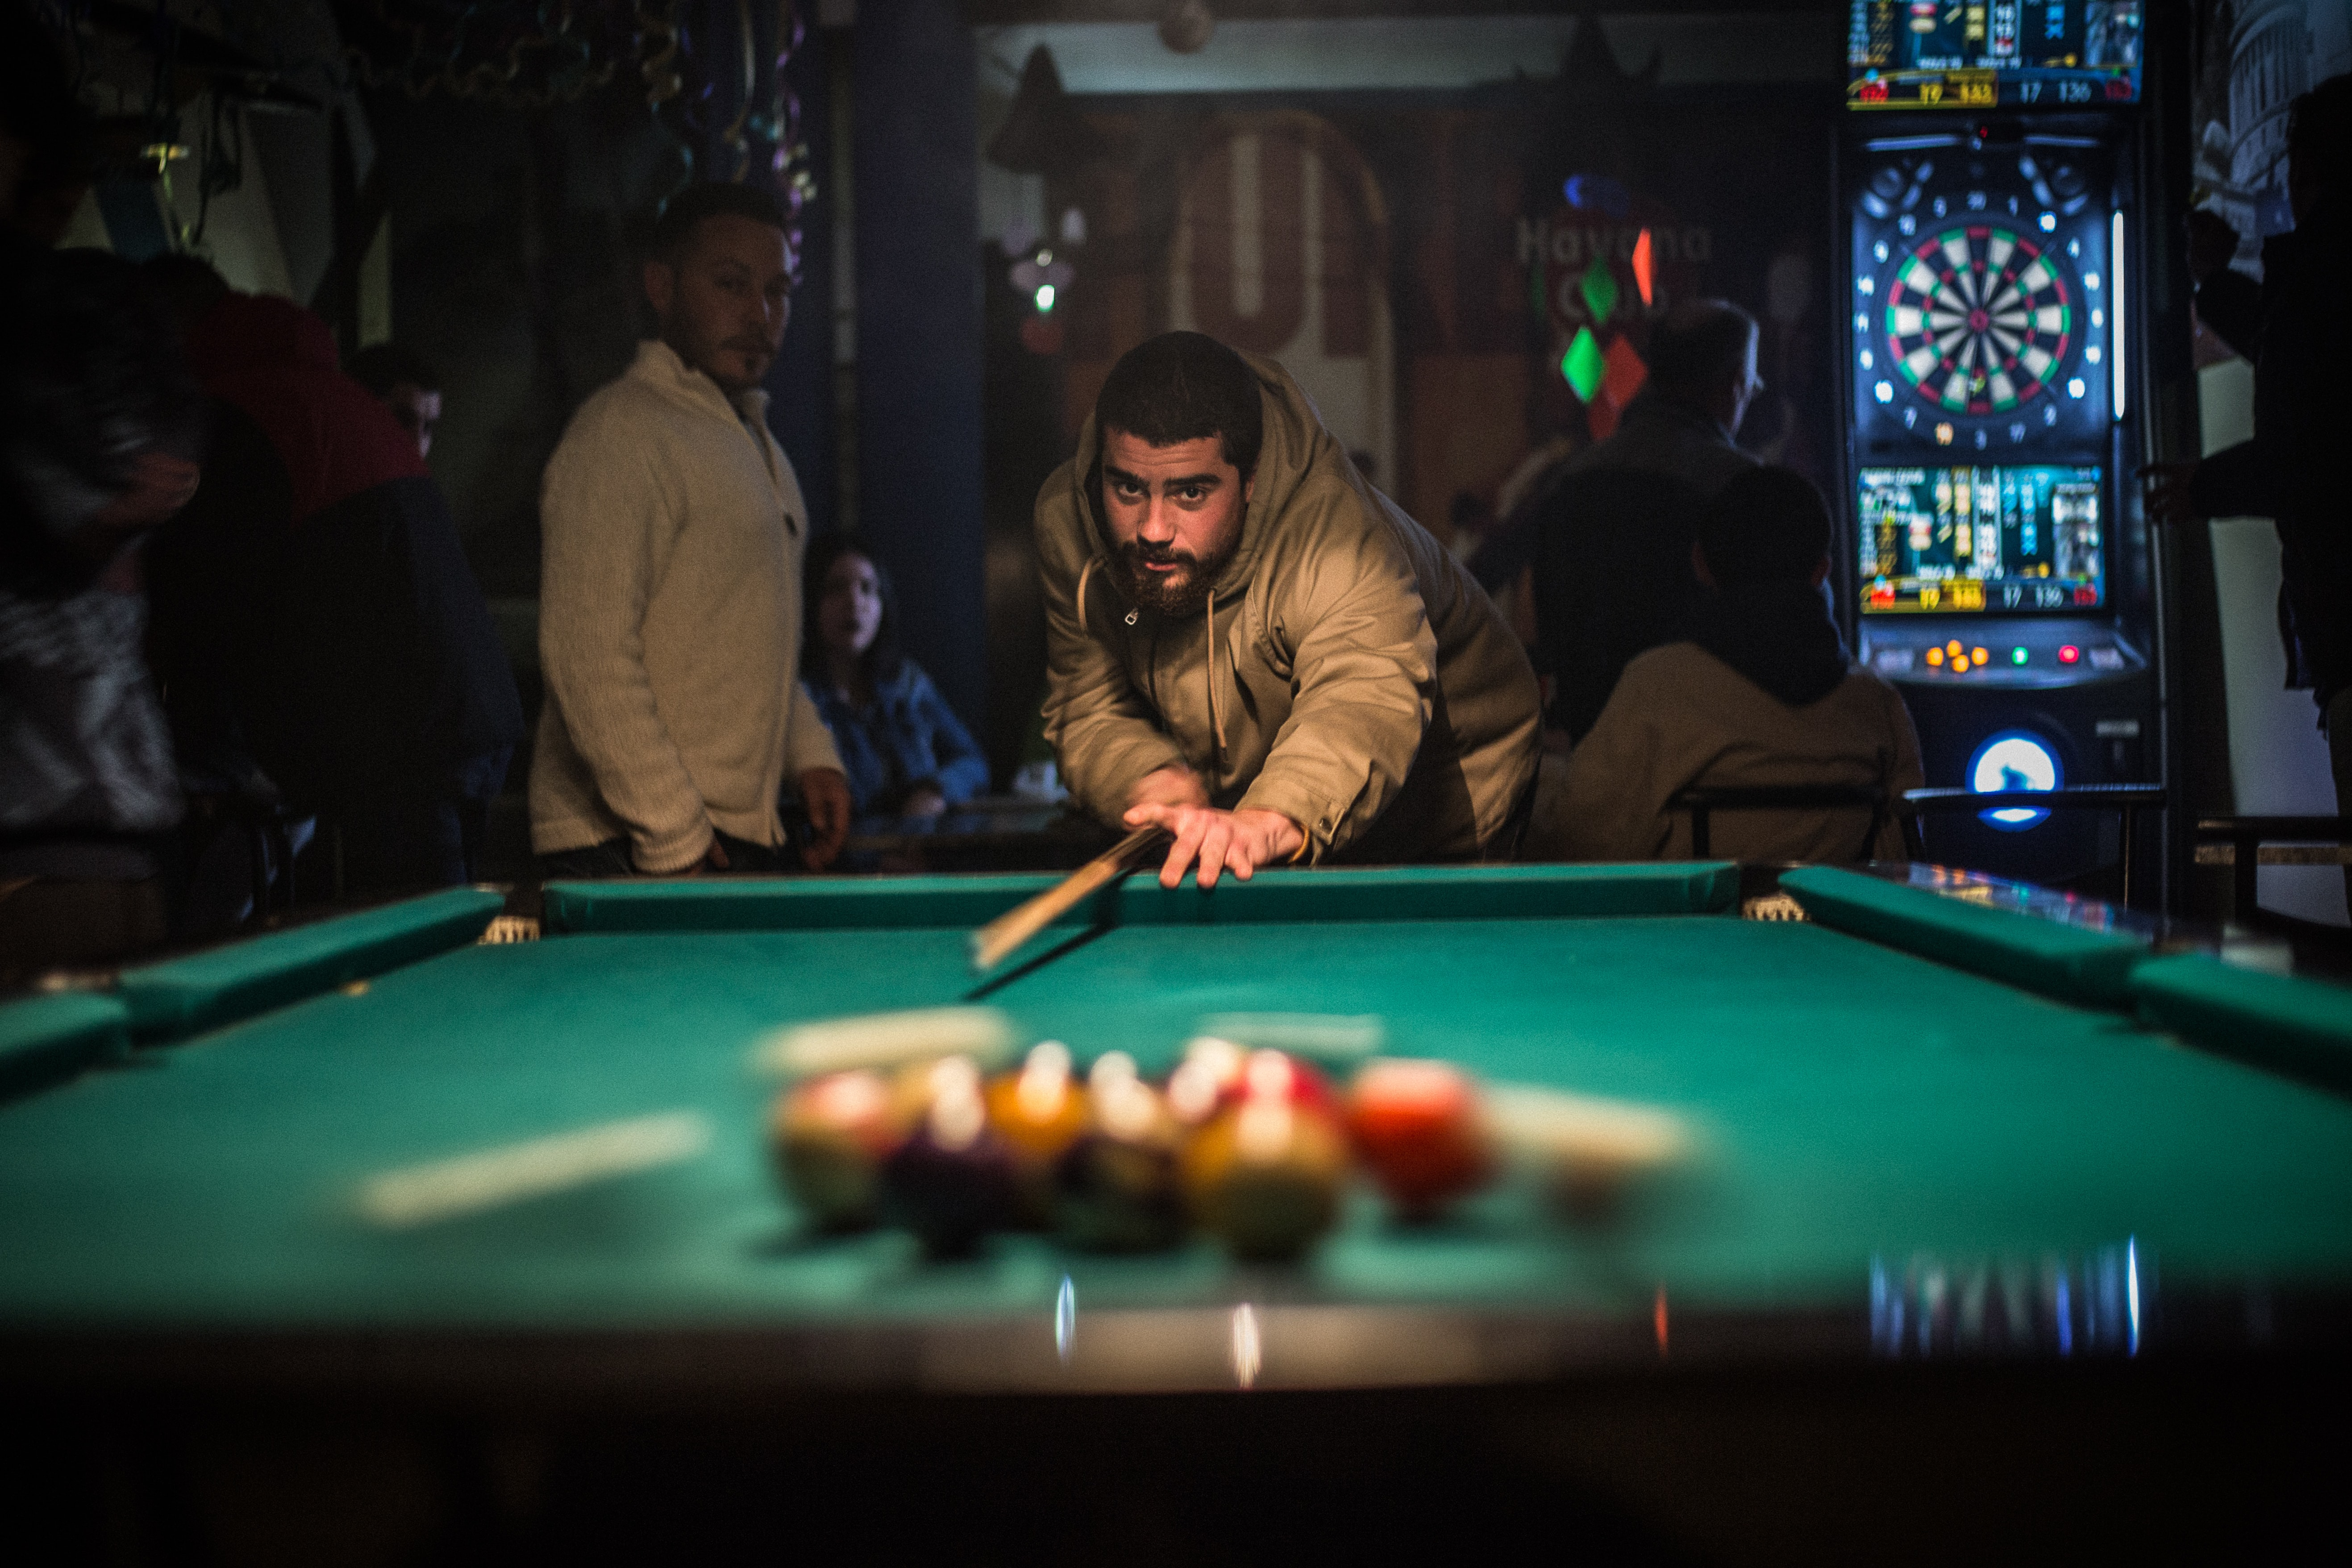 A man playing snooker on a pool table with his friend by his side in a bar in Cuba